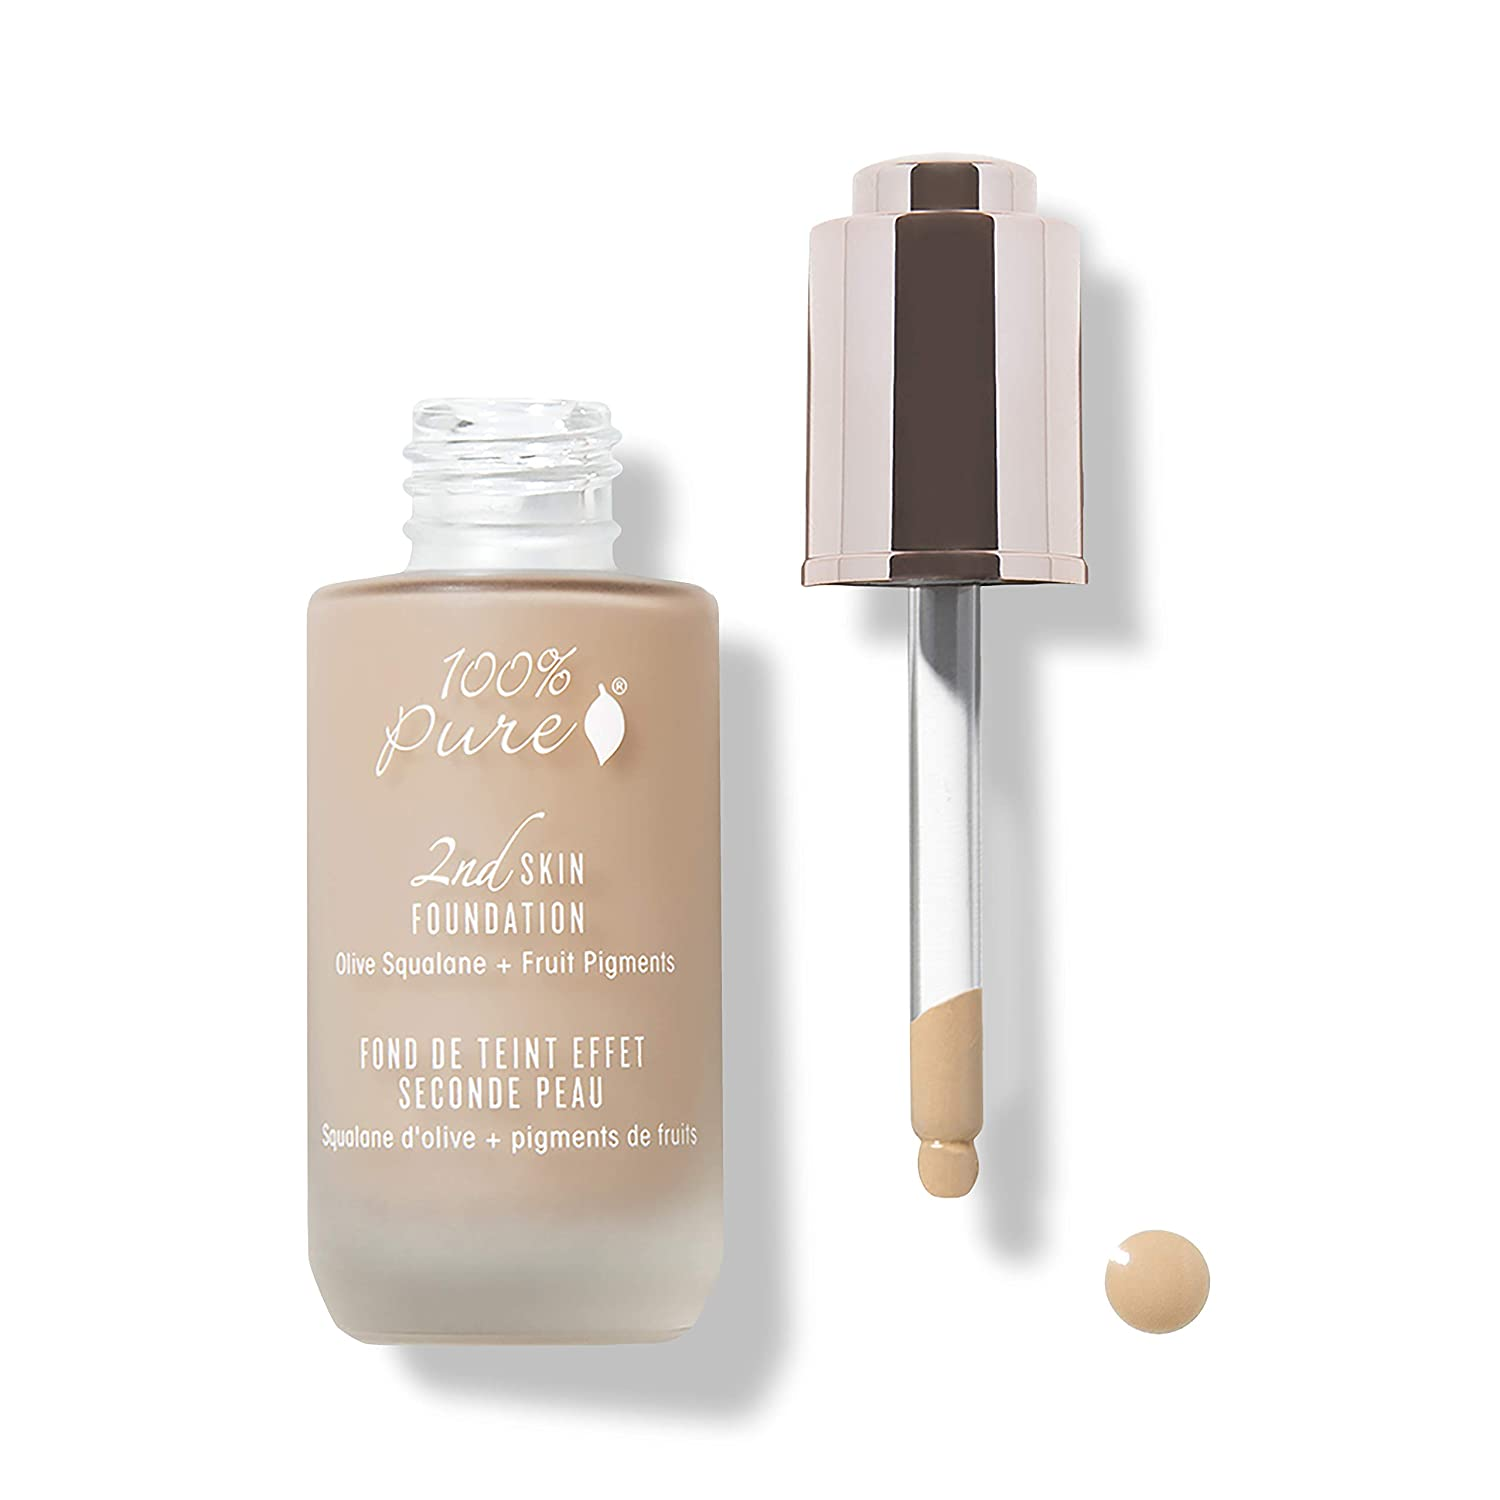 100% PURE 2nd Skin Foundation, Shade 4, Full Coverage, Lightweight, Blendable Formula, Satin Finish, Absorbs Oil, Anti-Aging, Natural, Vegan Makeup (Warm w/Olive Undertone) - 1.18 Fl Oz